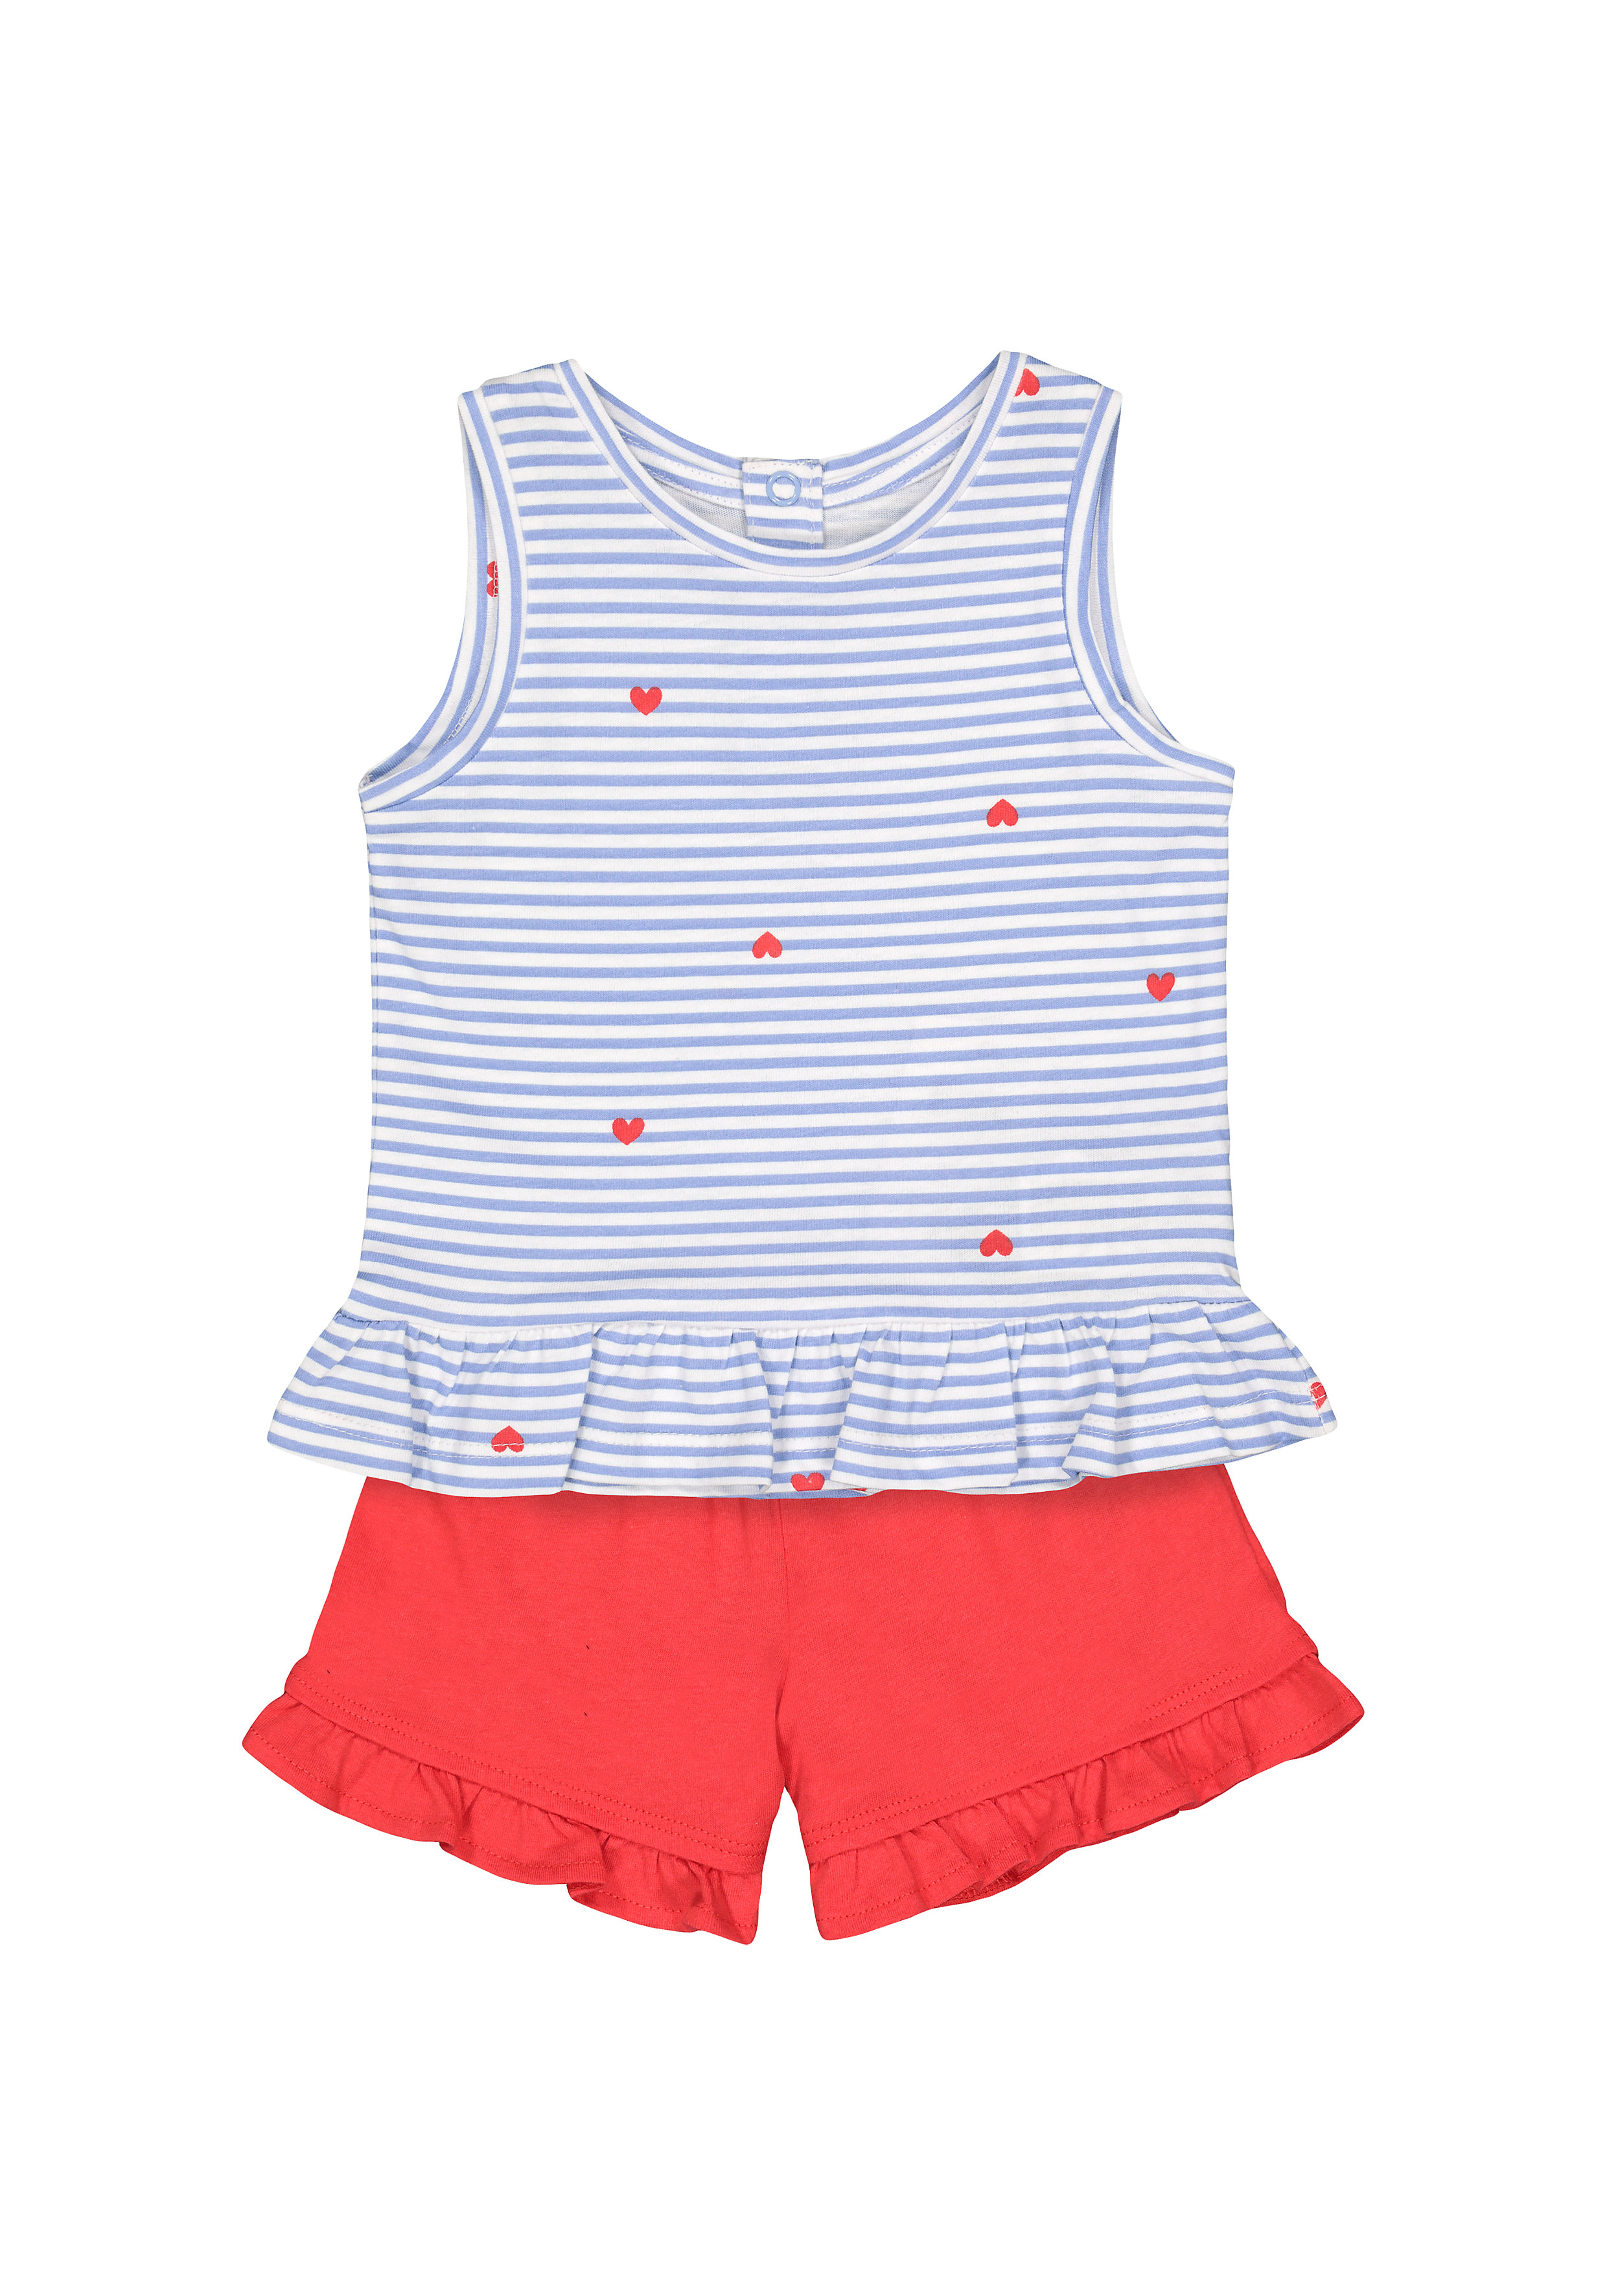 Mothercare | Girls Sleeveless T-Shirt And Shorts Set Stripes And Heart Print - Blue Red